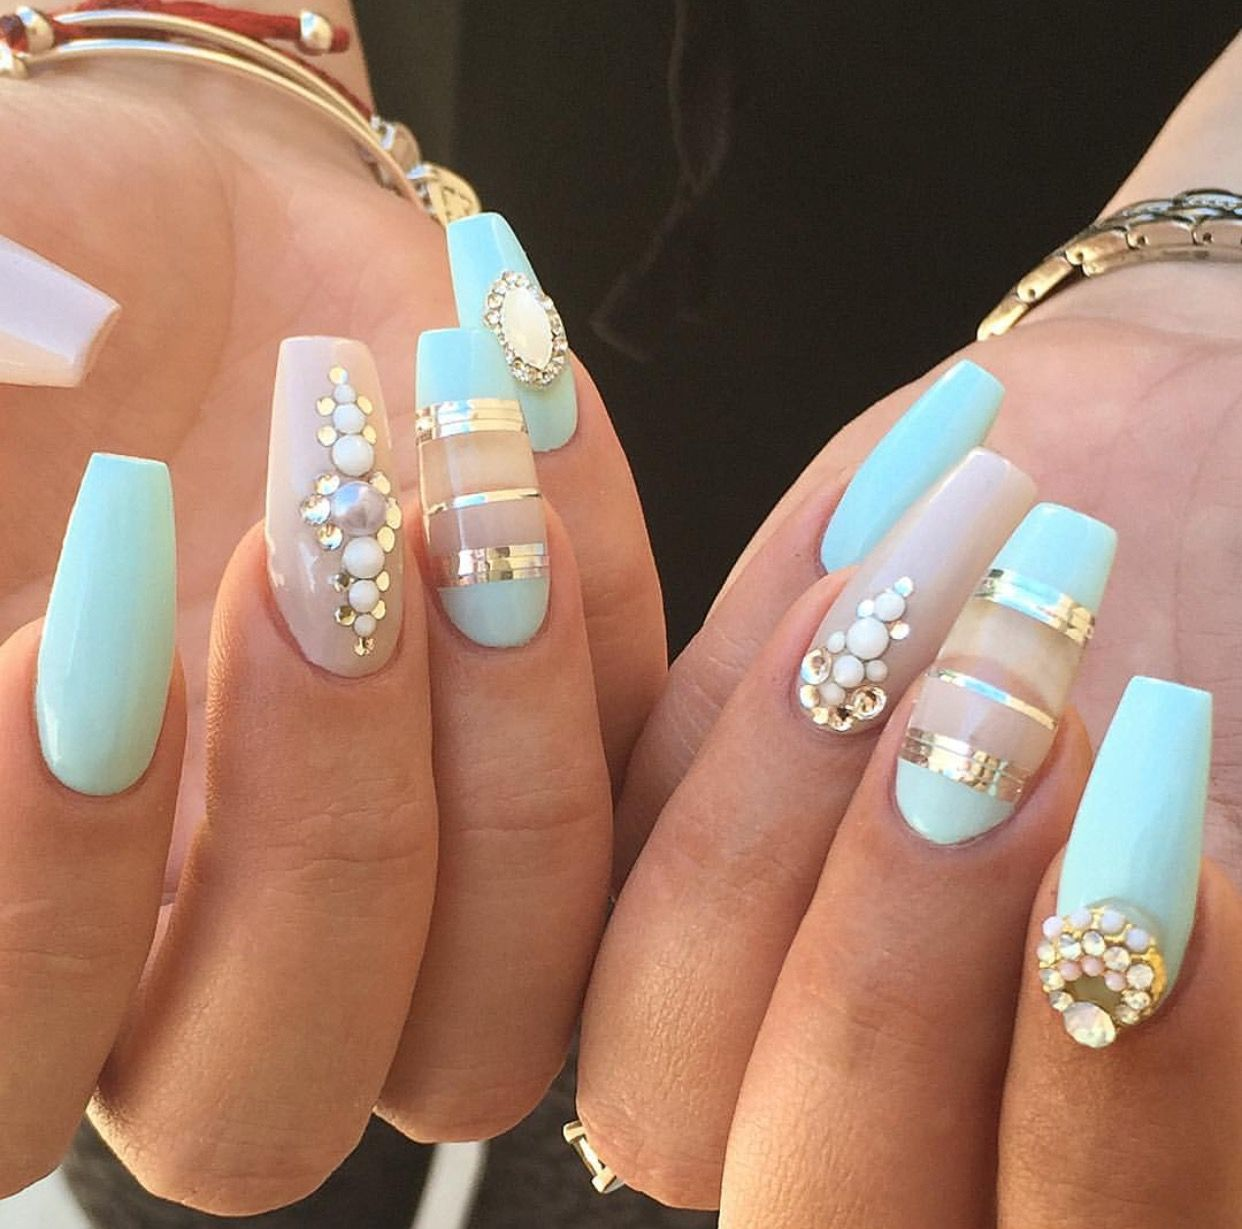 Summer light turquoise nails • Mint nails with nail charms - Summer Light Turquoise Nails • Mint Nails With Nail Charms Nails